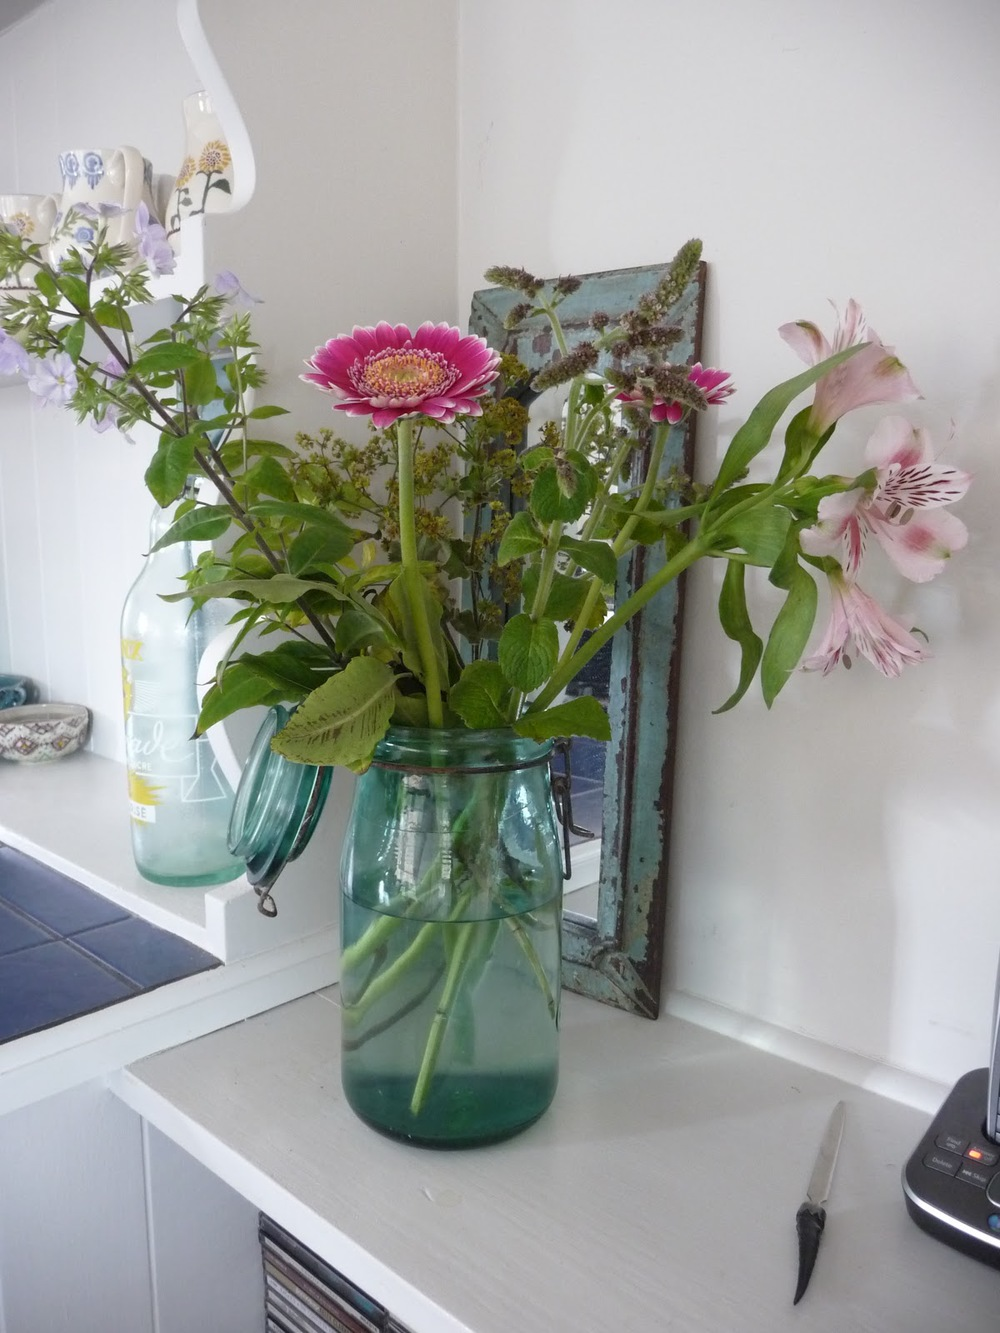 It's not necessary to have a vase crammed with flowers. Just a few stems like this gives each flower space to show off its beauty. And this vintage French jar, a great find from  Phoenix on Golborne  makes a great vase.